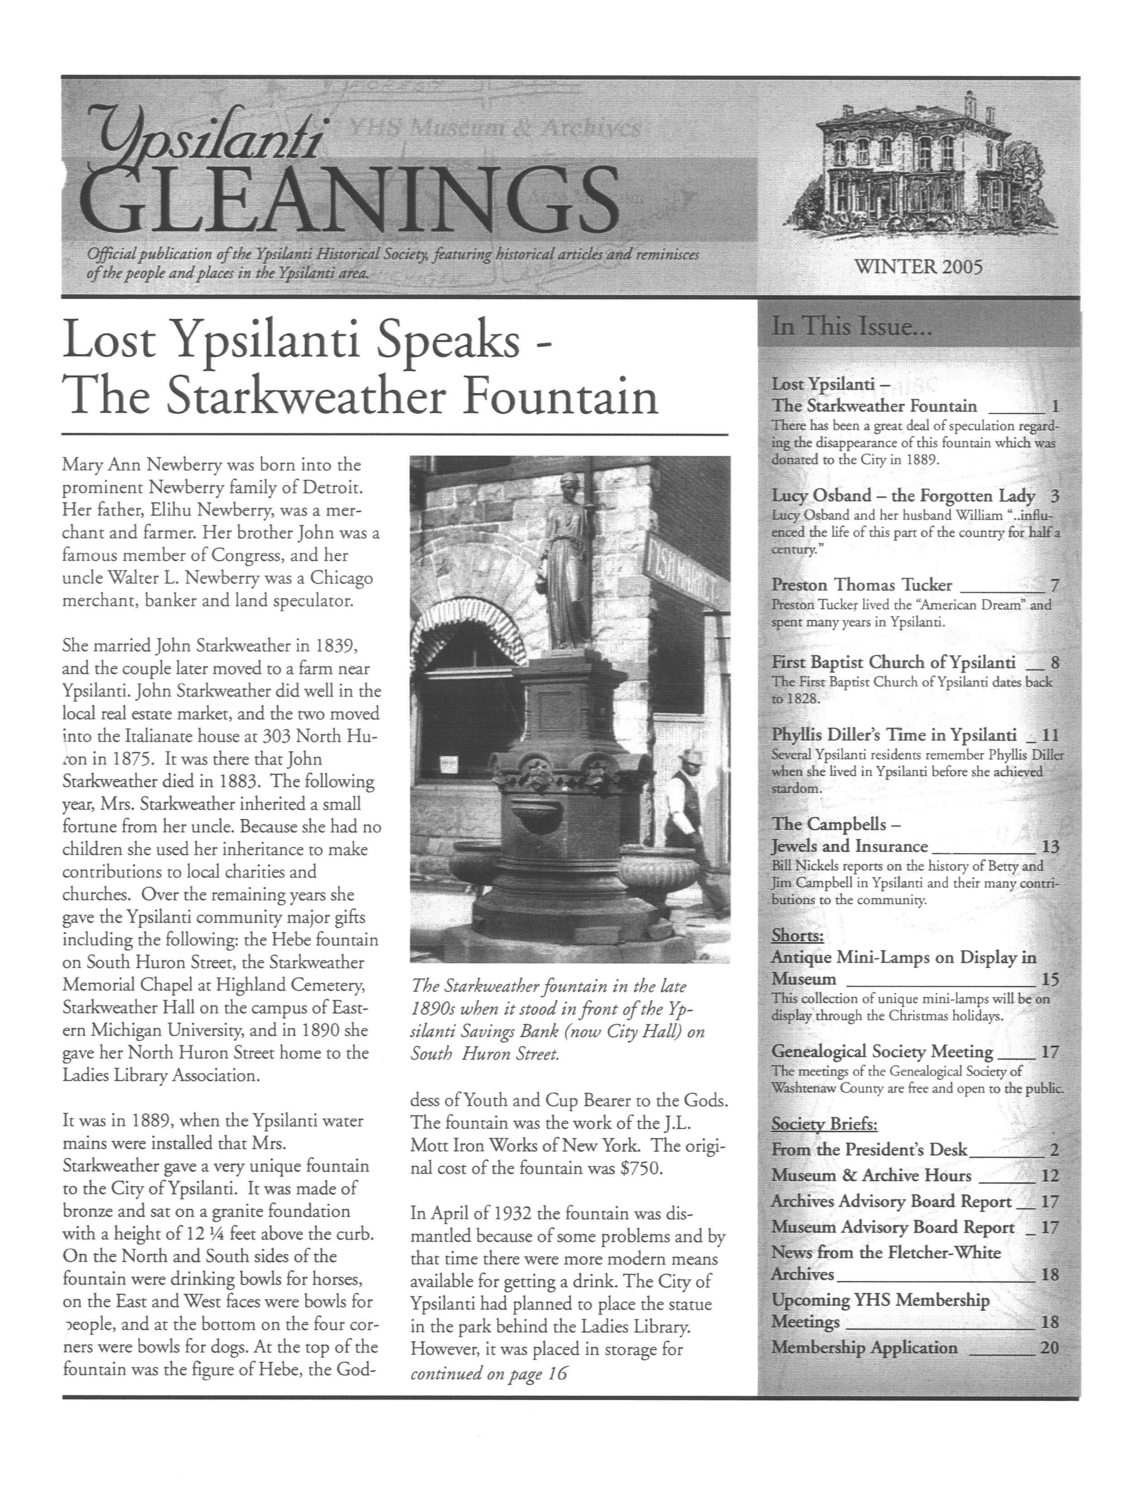 Lost Ypsilanti Speaks--The Starkweather Fountain image